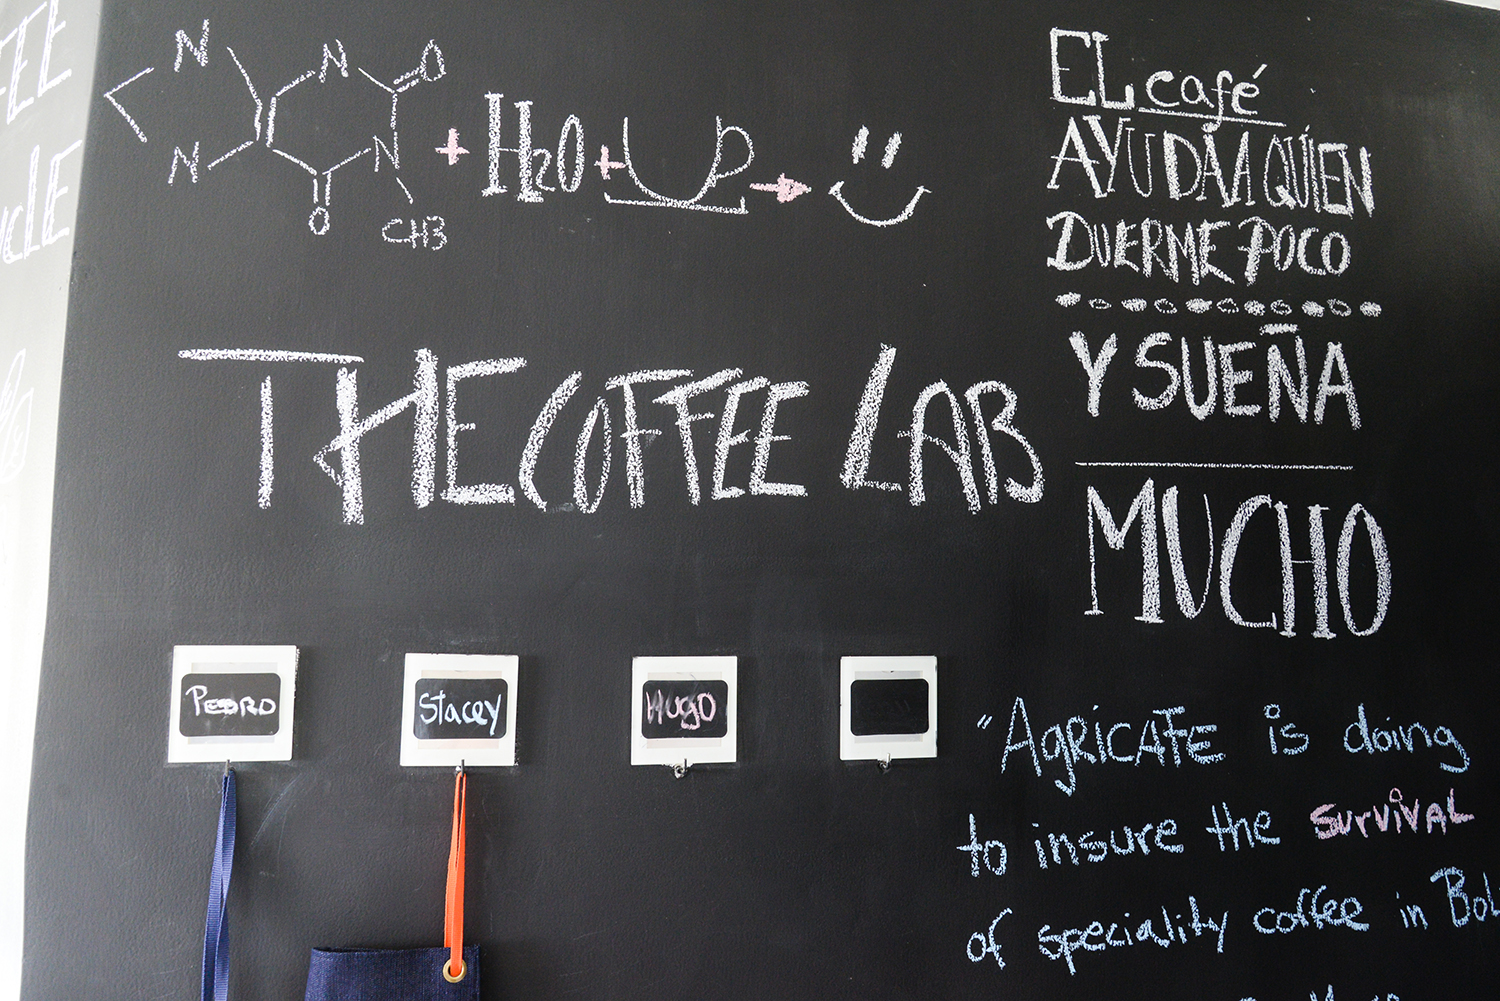 agricafe coffee lab in bolivia